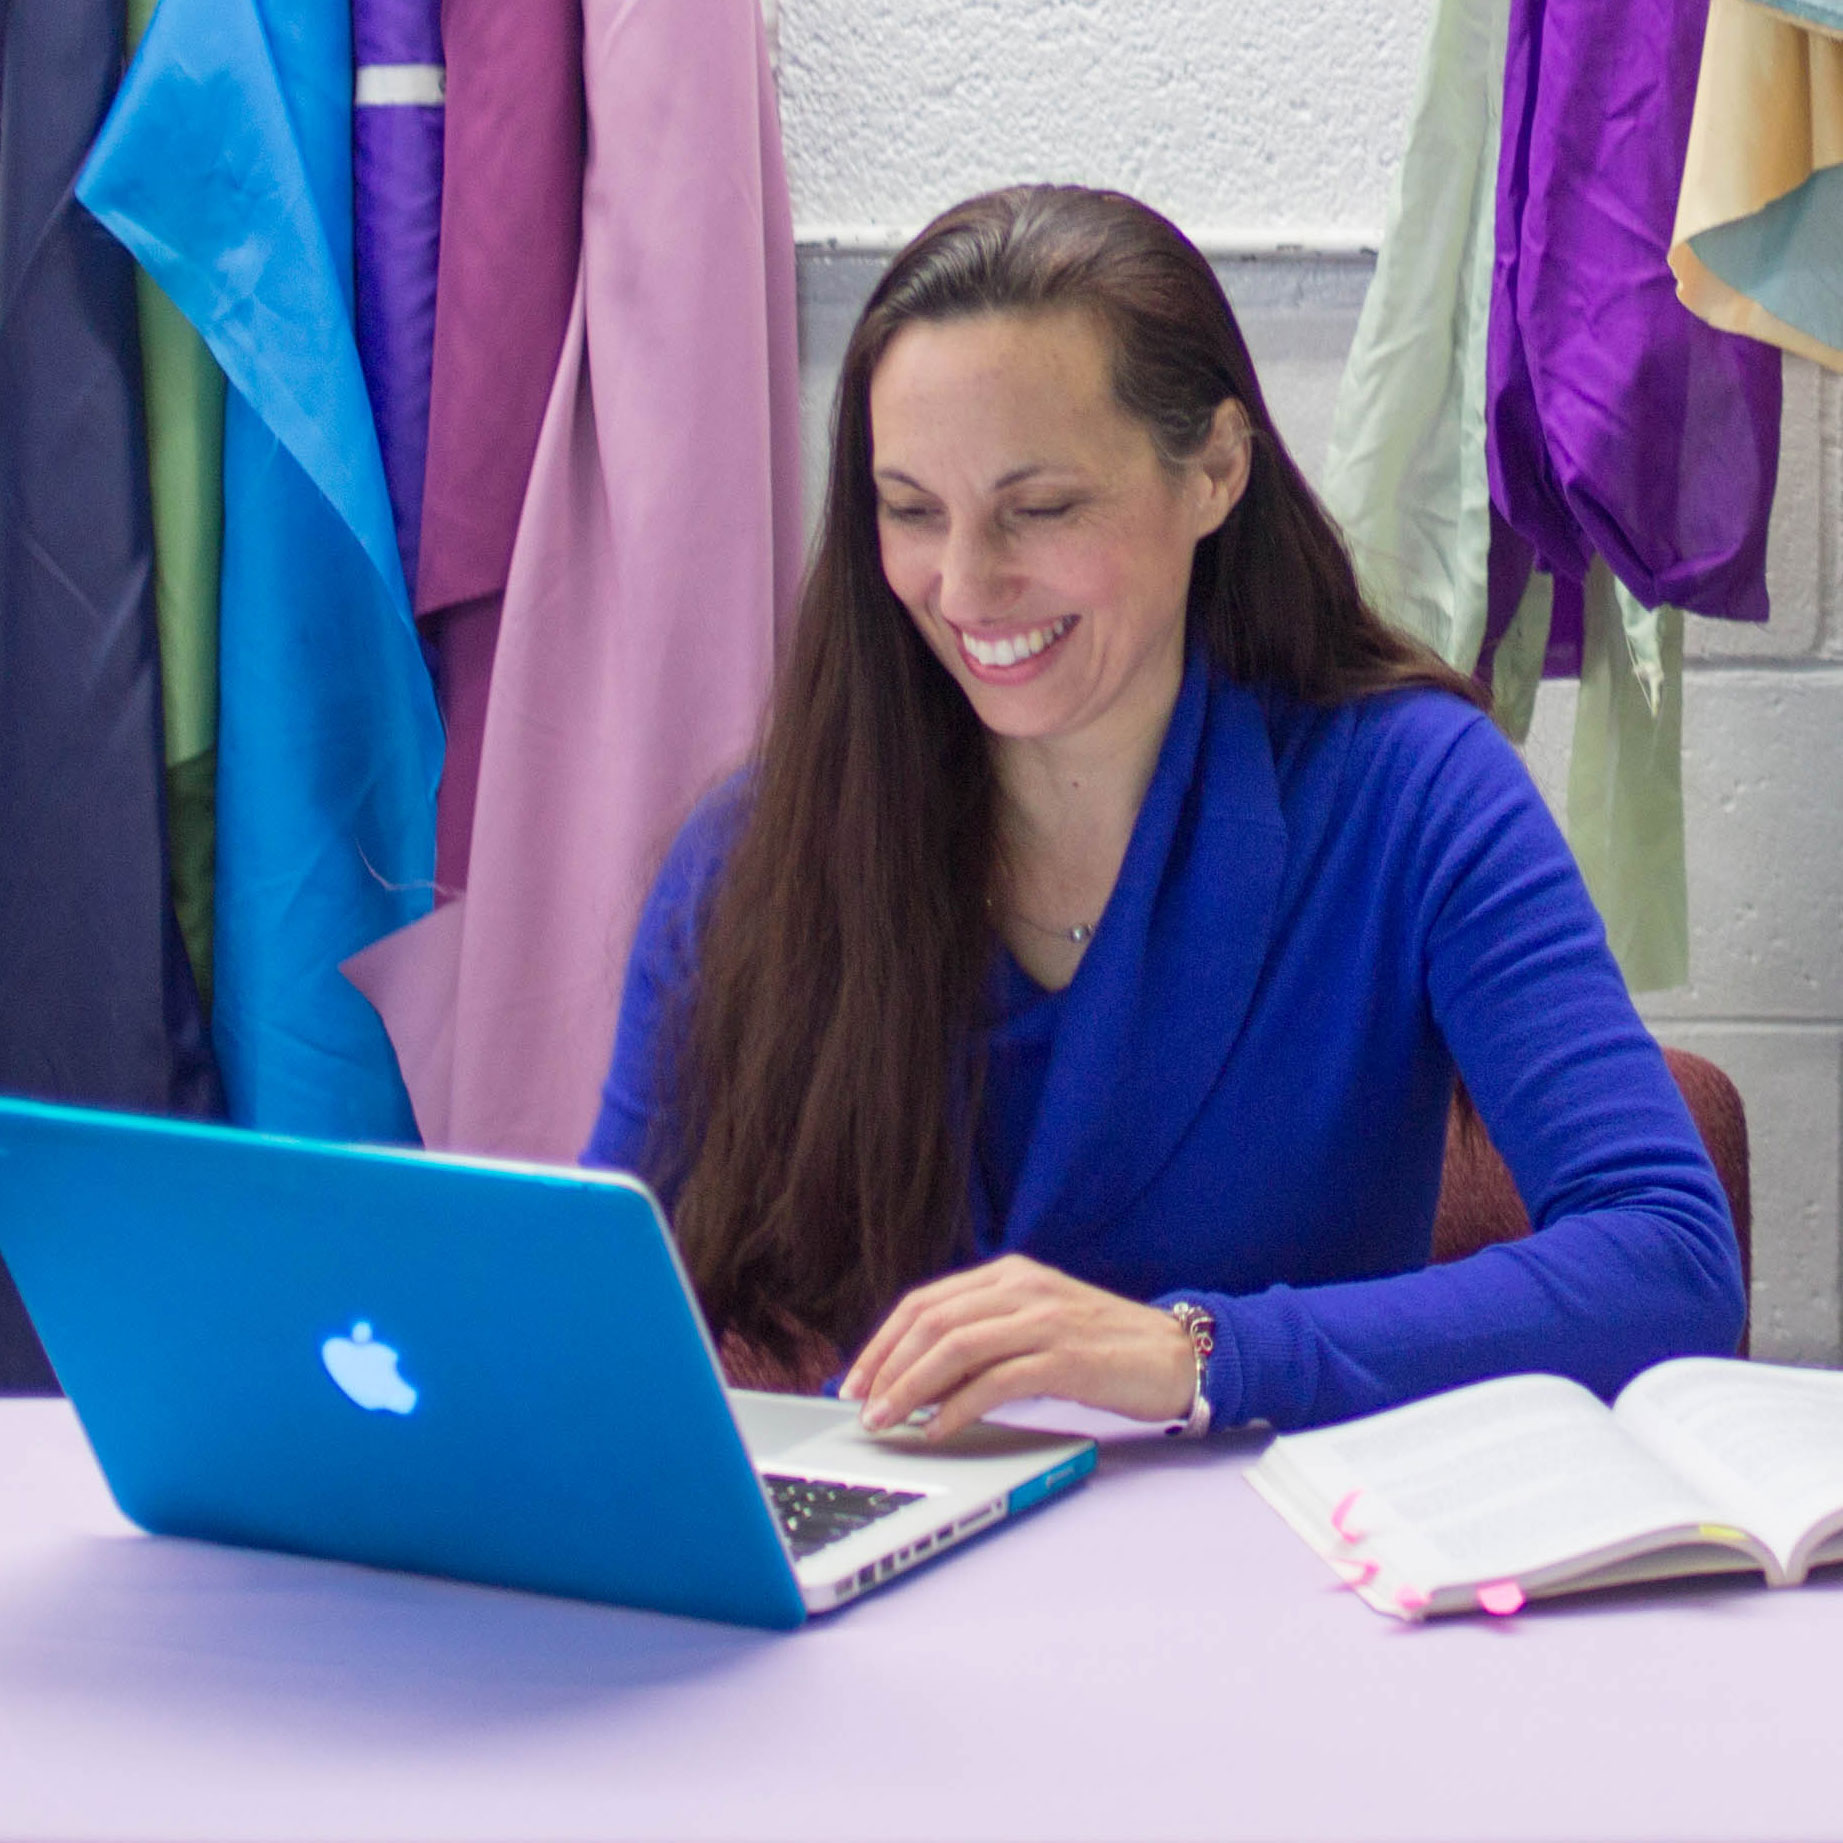 UMass Lowell online student Clarissa Eaton working at a computer